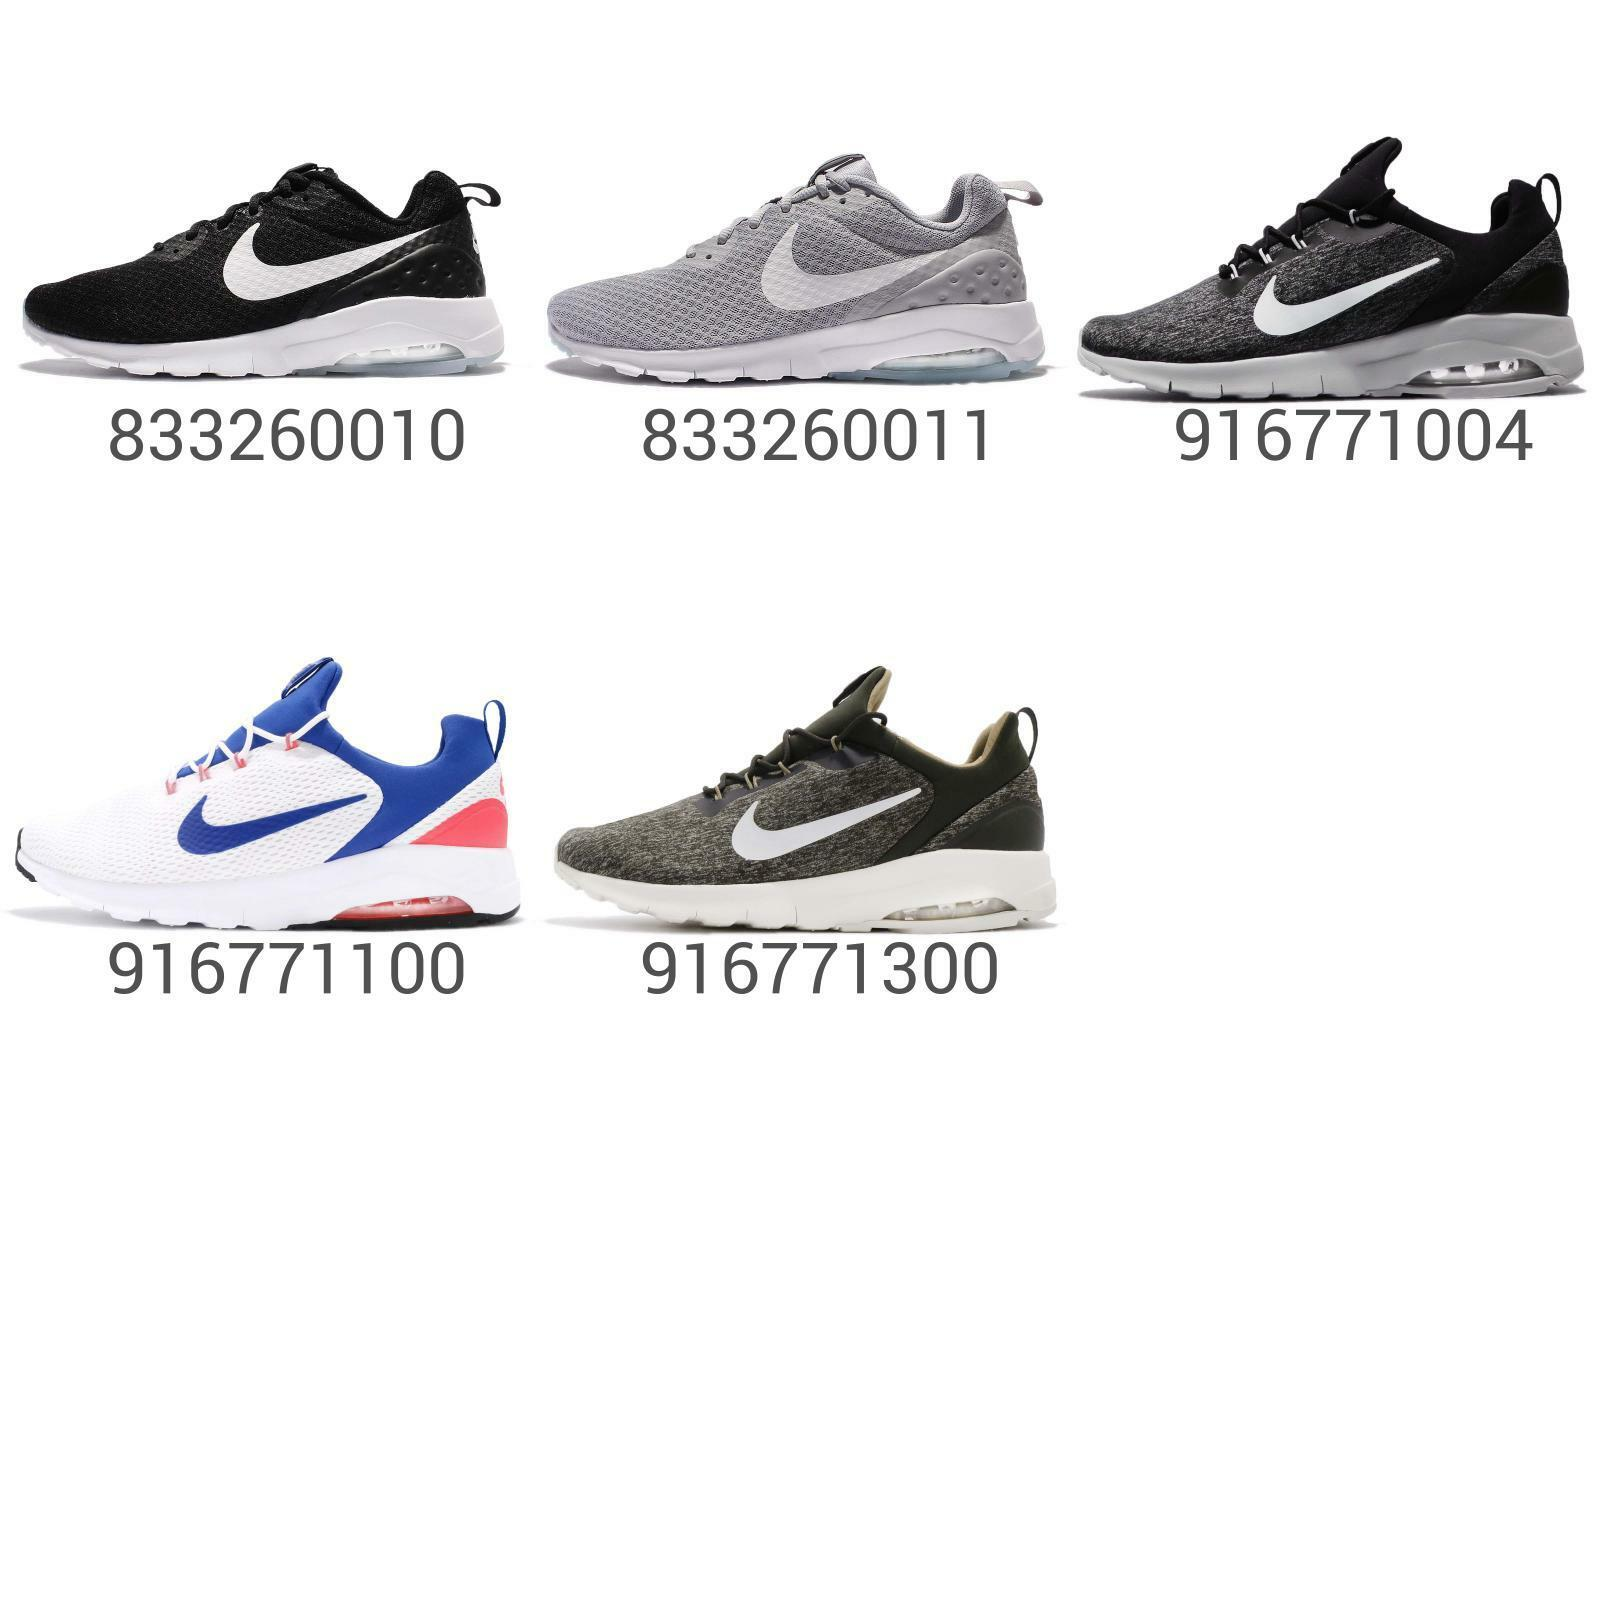 7a151c2723 Air Motion Mens Running shoes Sneakers Pick 1 Max Nike nudyxj756-new ...